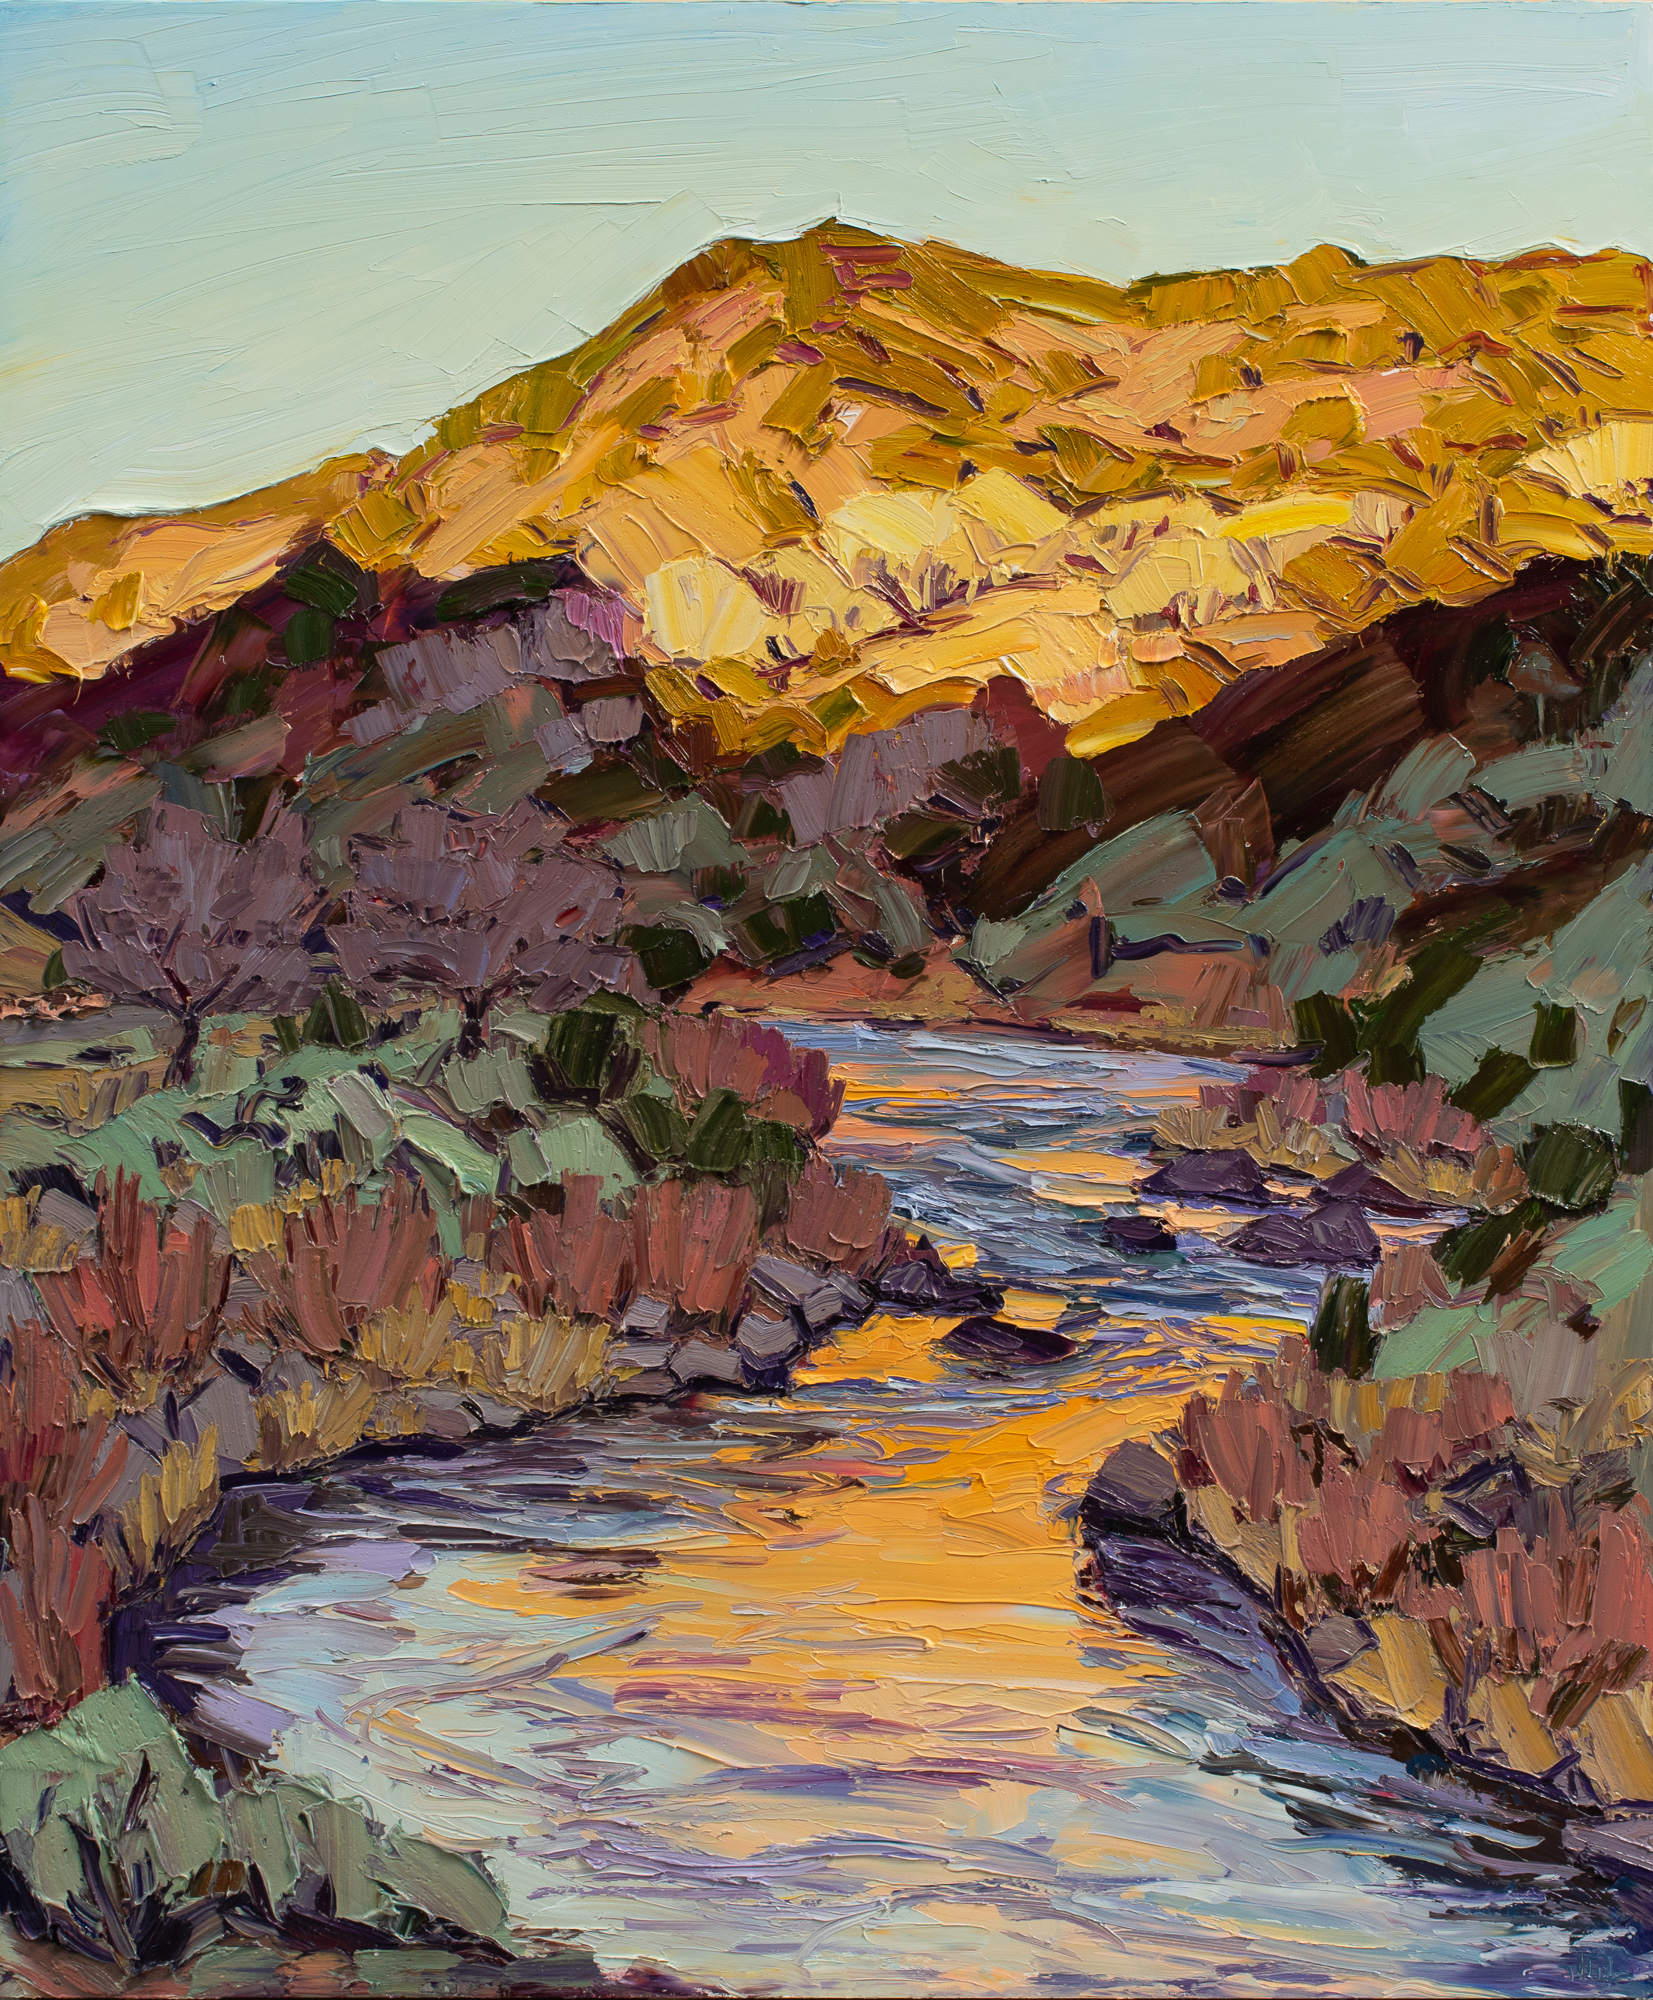 Downstream sunrise